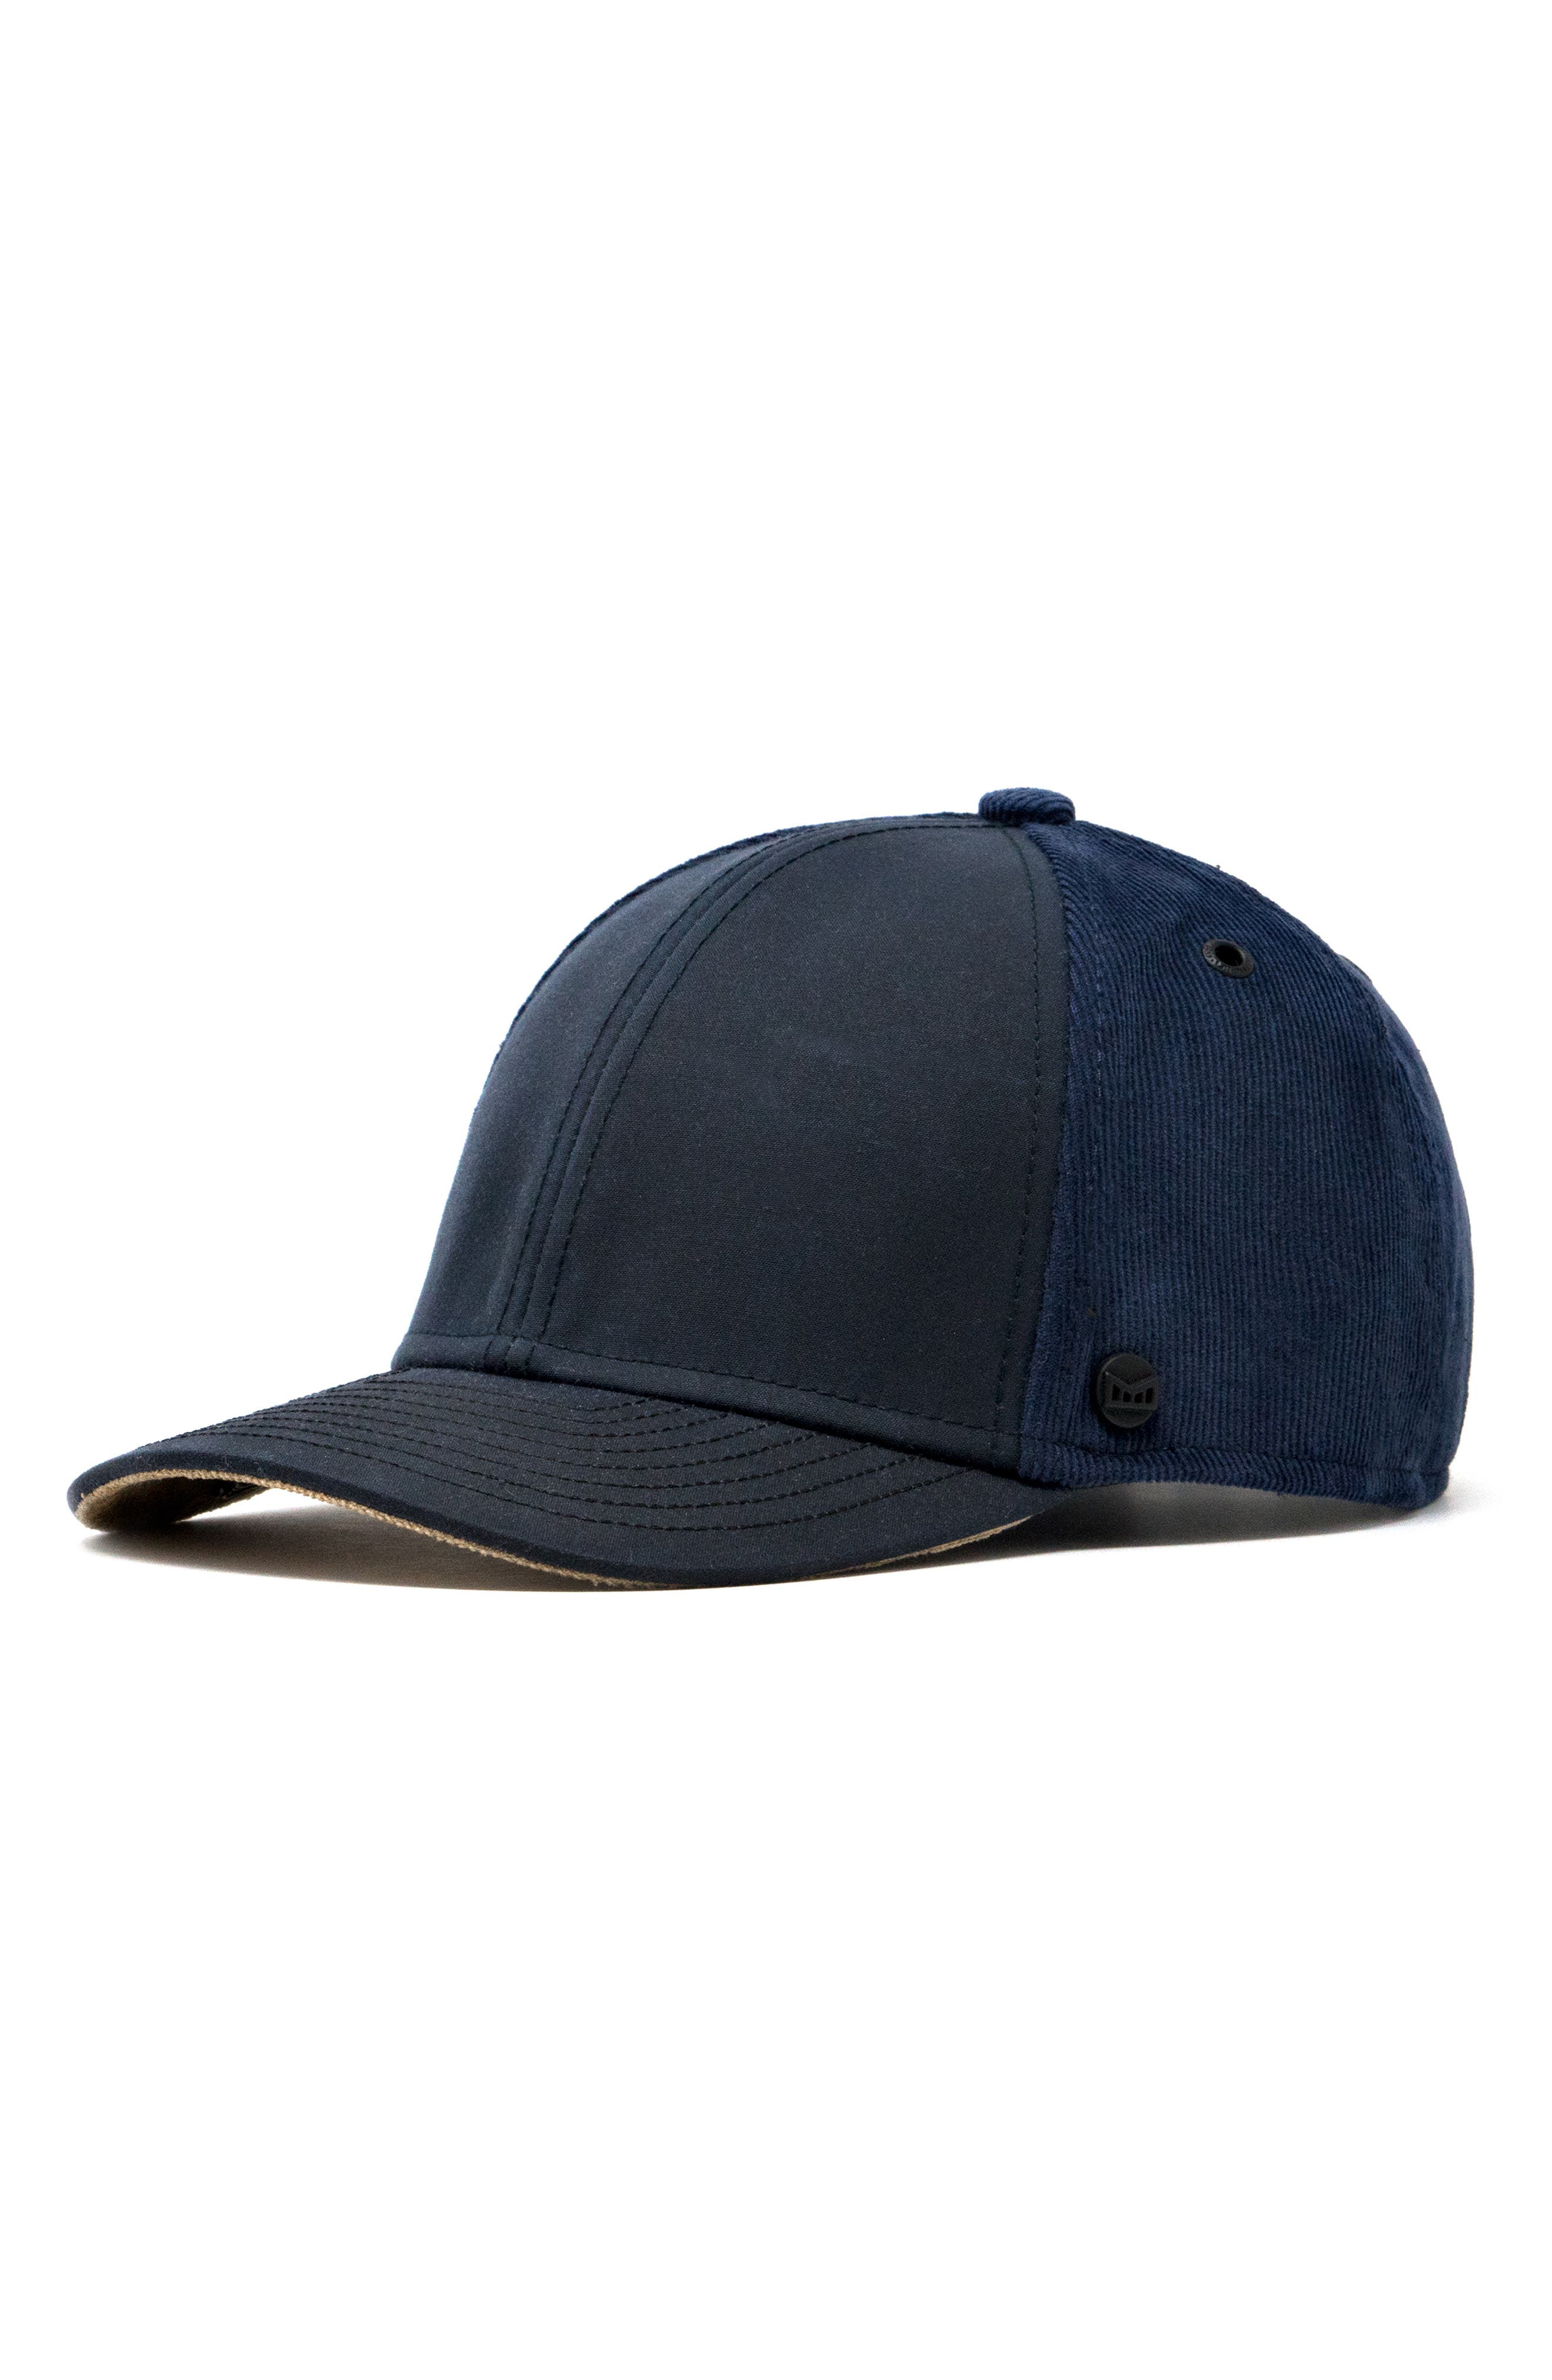 super popular 885eb 0cf57 official flat bill hats isostilo 013f2 ba780  sale melin discovery baseball  cap 837ff f472e